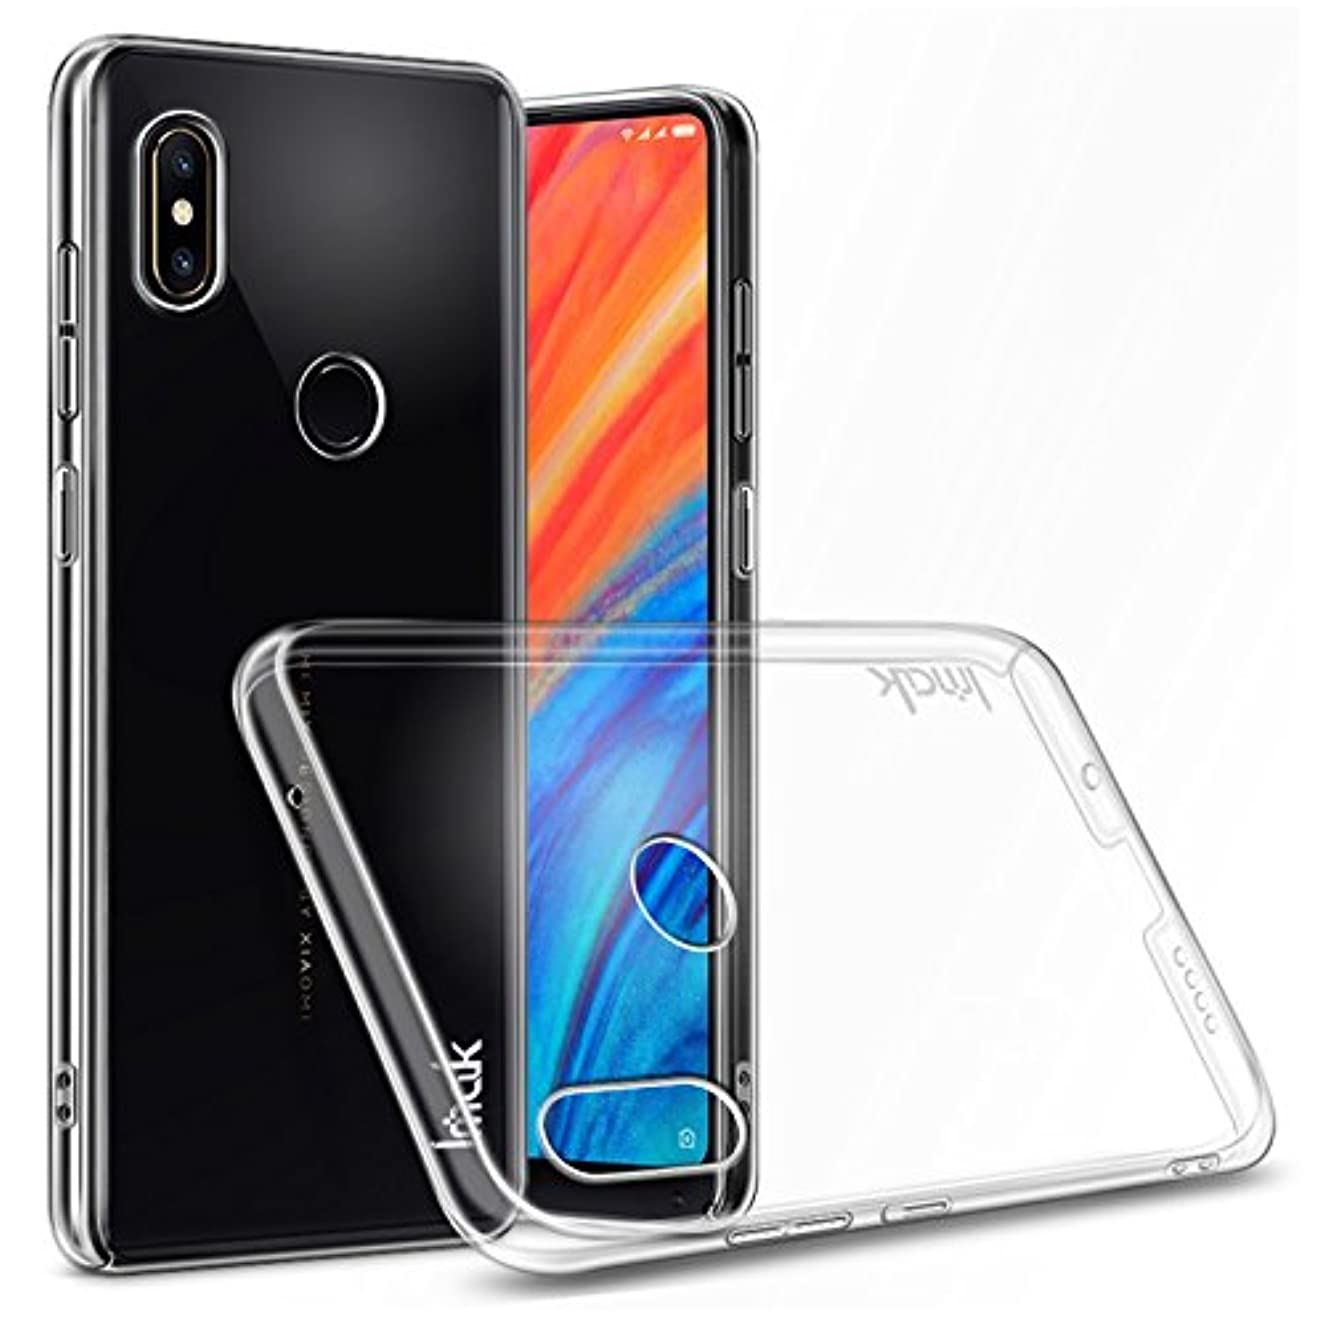 Imak Xiaomi Mi Mix 2S Mix2s Case, Transparent Solid Plastic Case [Ultra Thin & Light] [Anti-Yellowing] Full Protection Crystal Clear Cover with Lanyard Hole